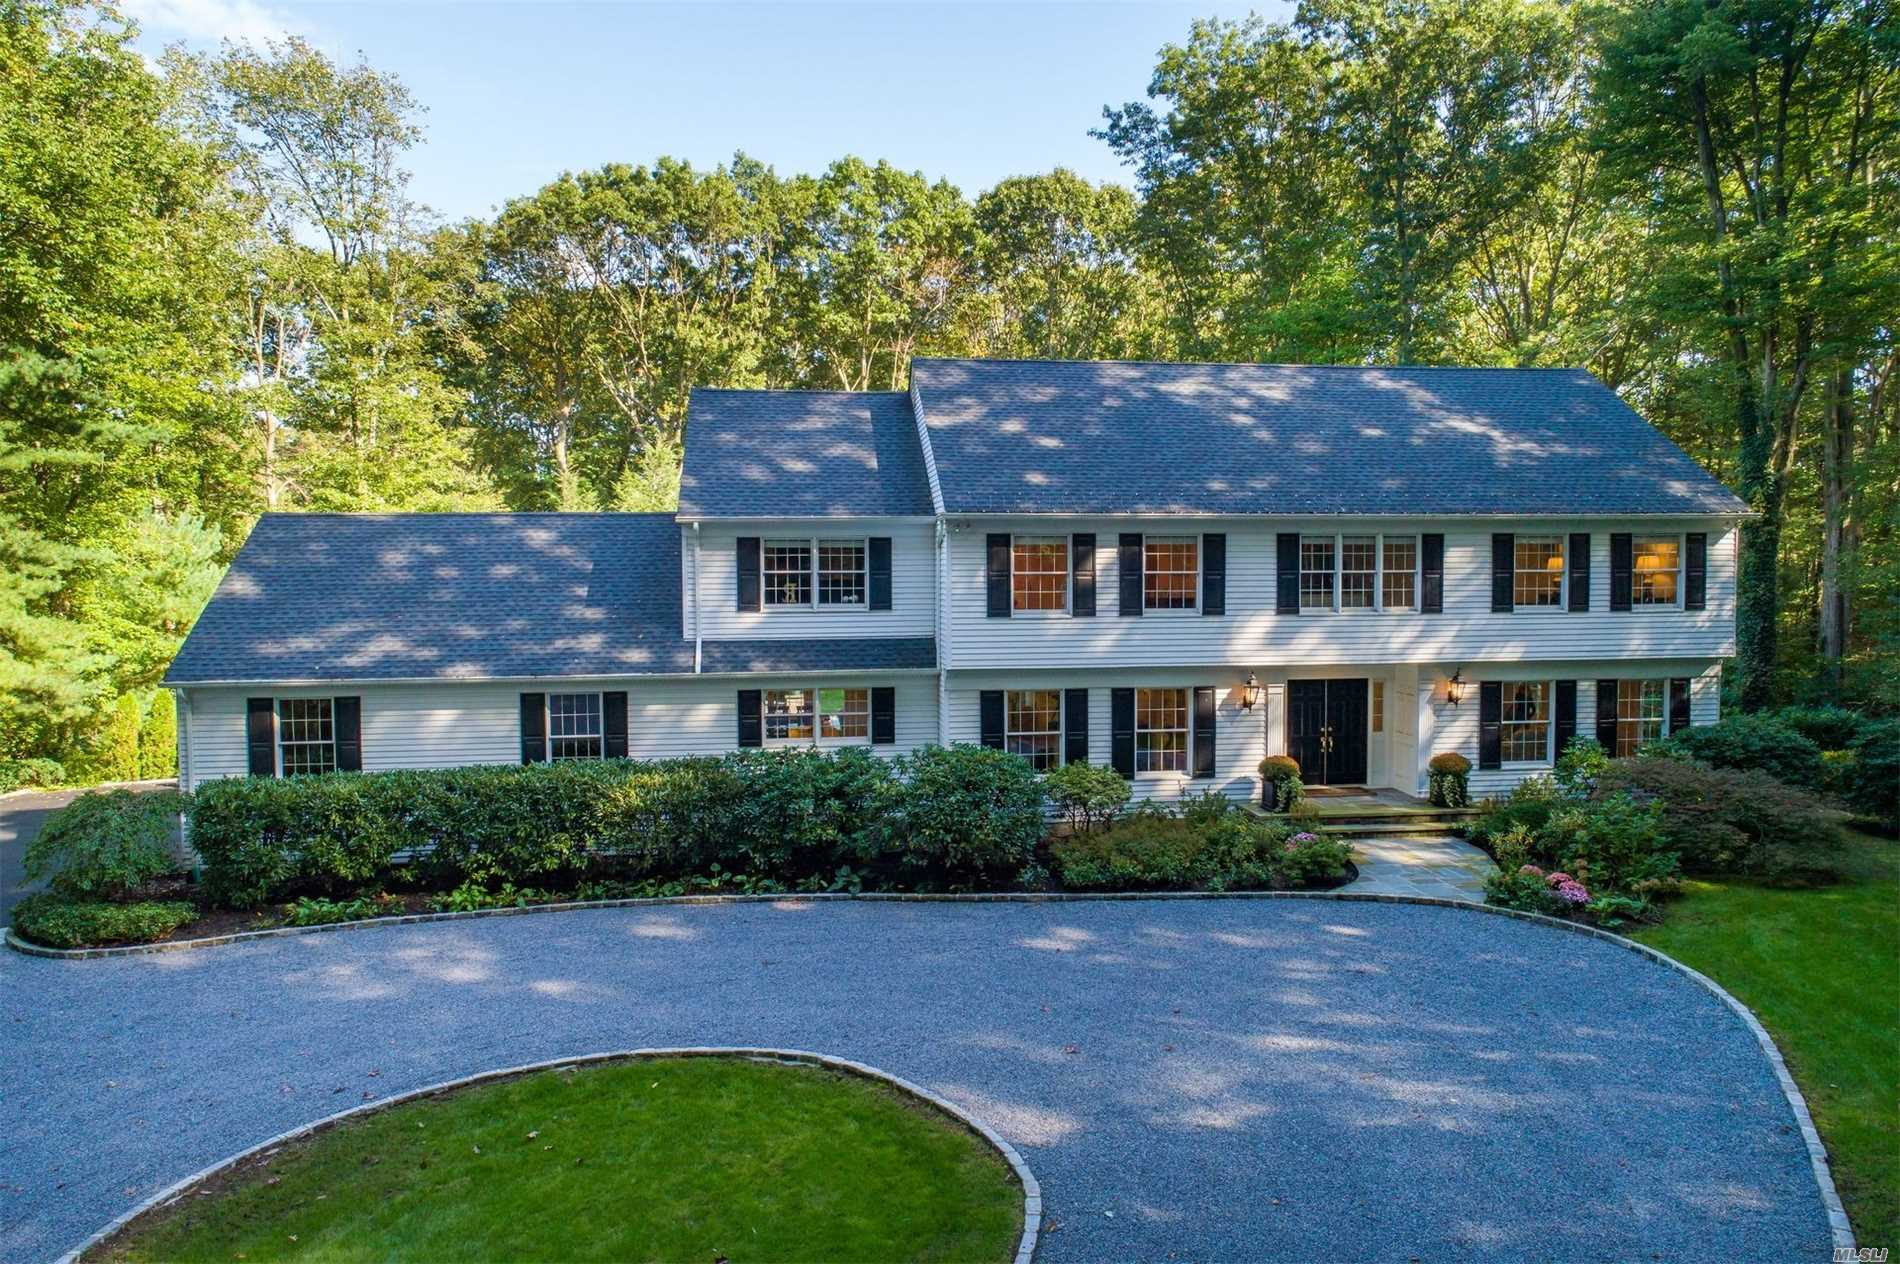 The Quintessential North Shore Colonial! Tastefully Renovated & Nestled On 2 Private Acres. Impressive 2 Story Foyer W/ Sweeping Staircase Leads To 4 Bdrms, Including Master W/En-Suite & Wic. Eik Boasts Radiant Heat And Wall-To-Wall Glass Doors To Beautifully Maintained Yard. Enjoy Outdoor Living On Expansive Bluestone Patio W/ Built-In Bar And Fully Equipped Kitchen. Located In Csh School District And Less Than 3 Miles To Train, Village And Laurel Hollow Village Beach With Mooring Rights (Fee).